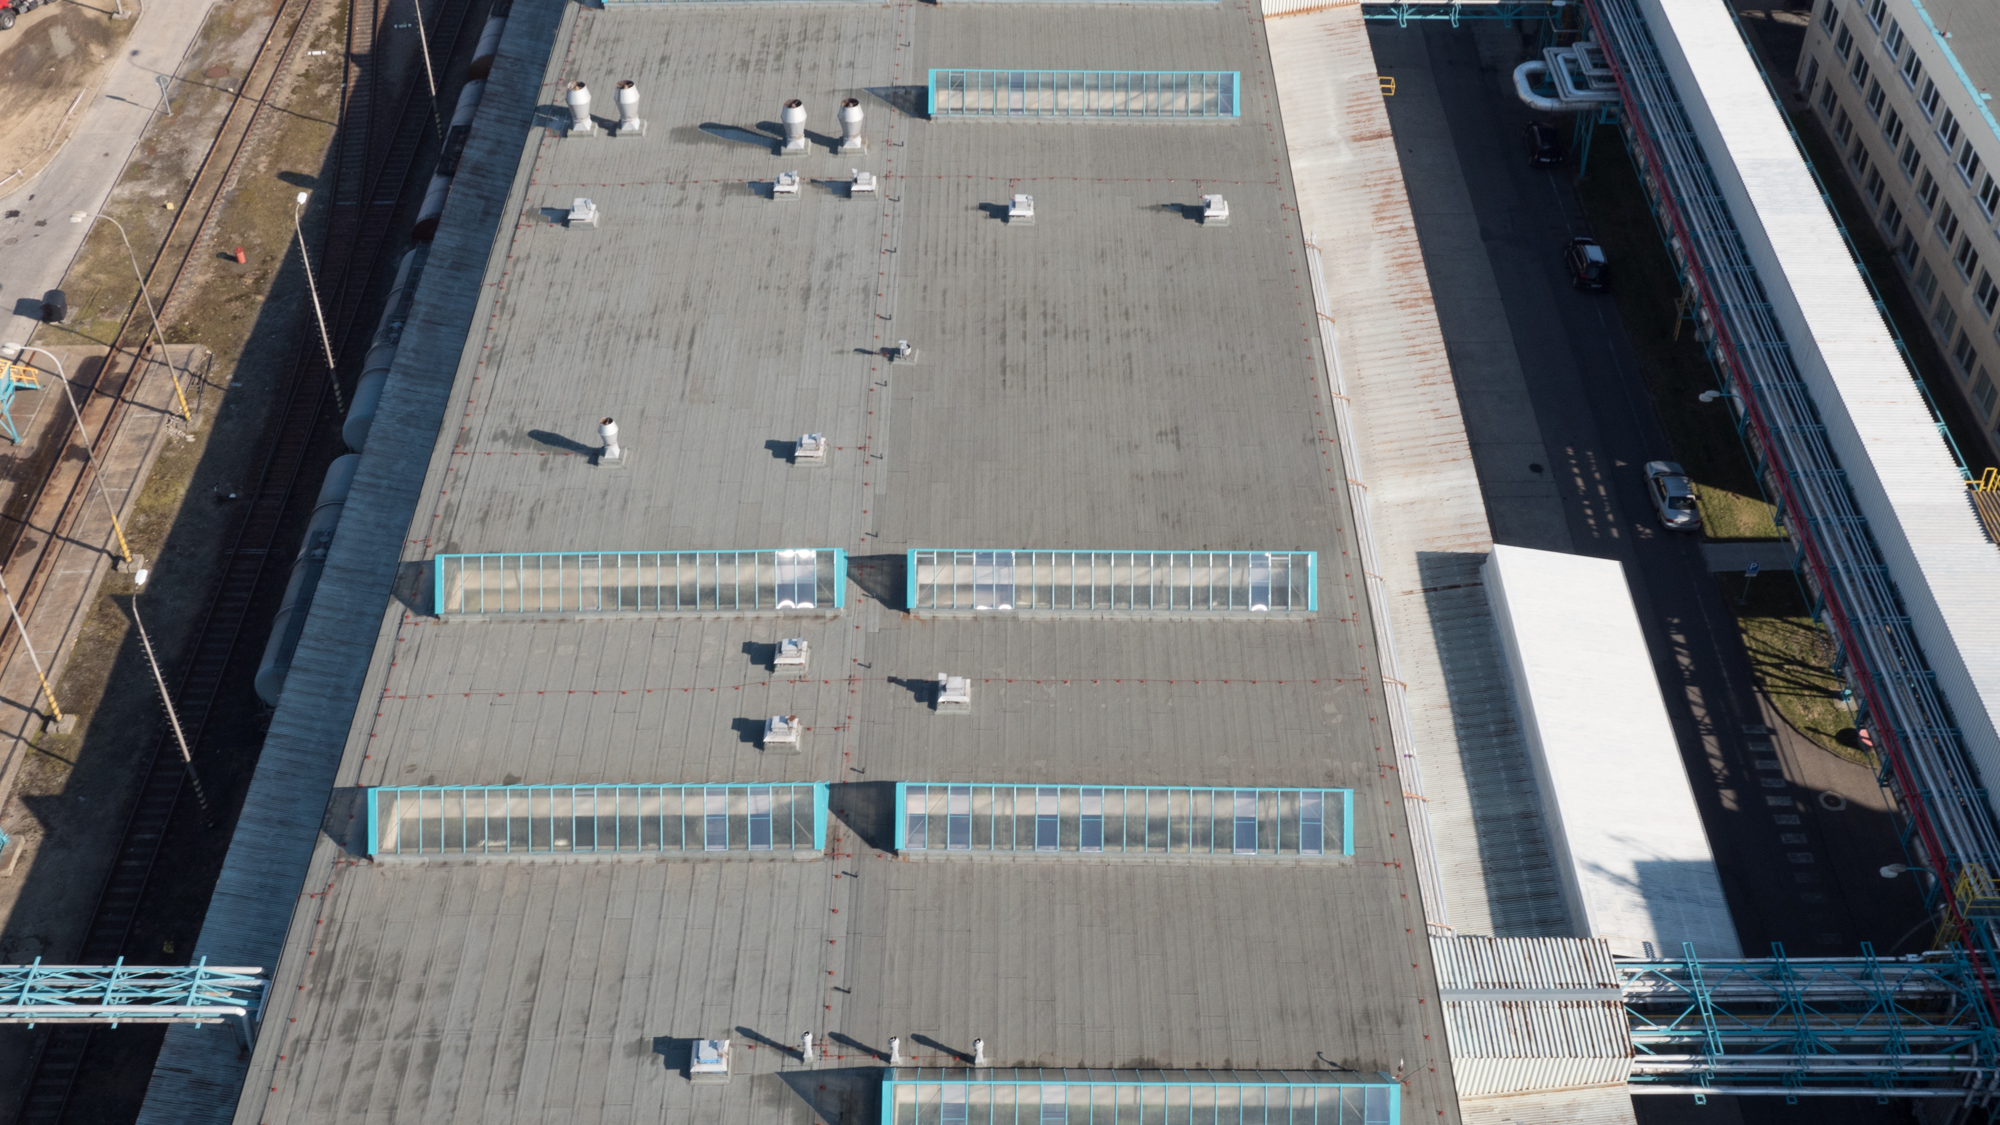 flat roof inspection with thermal imaging system